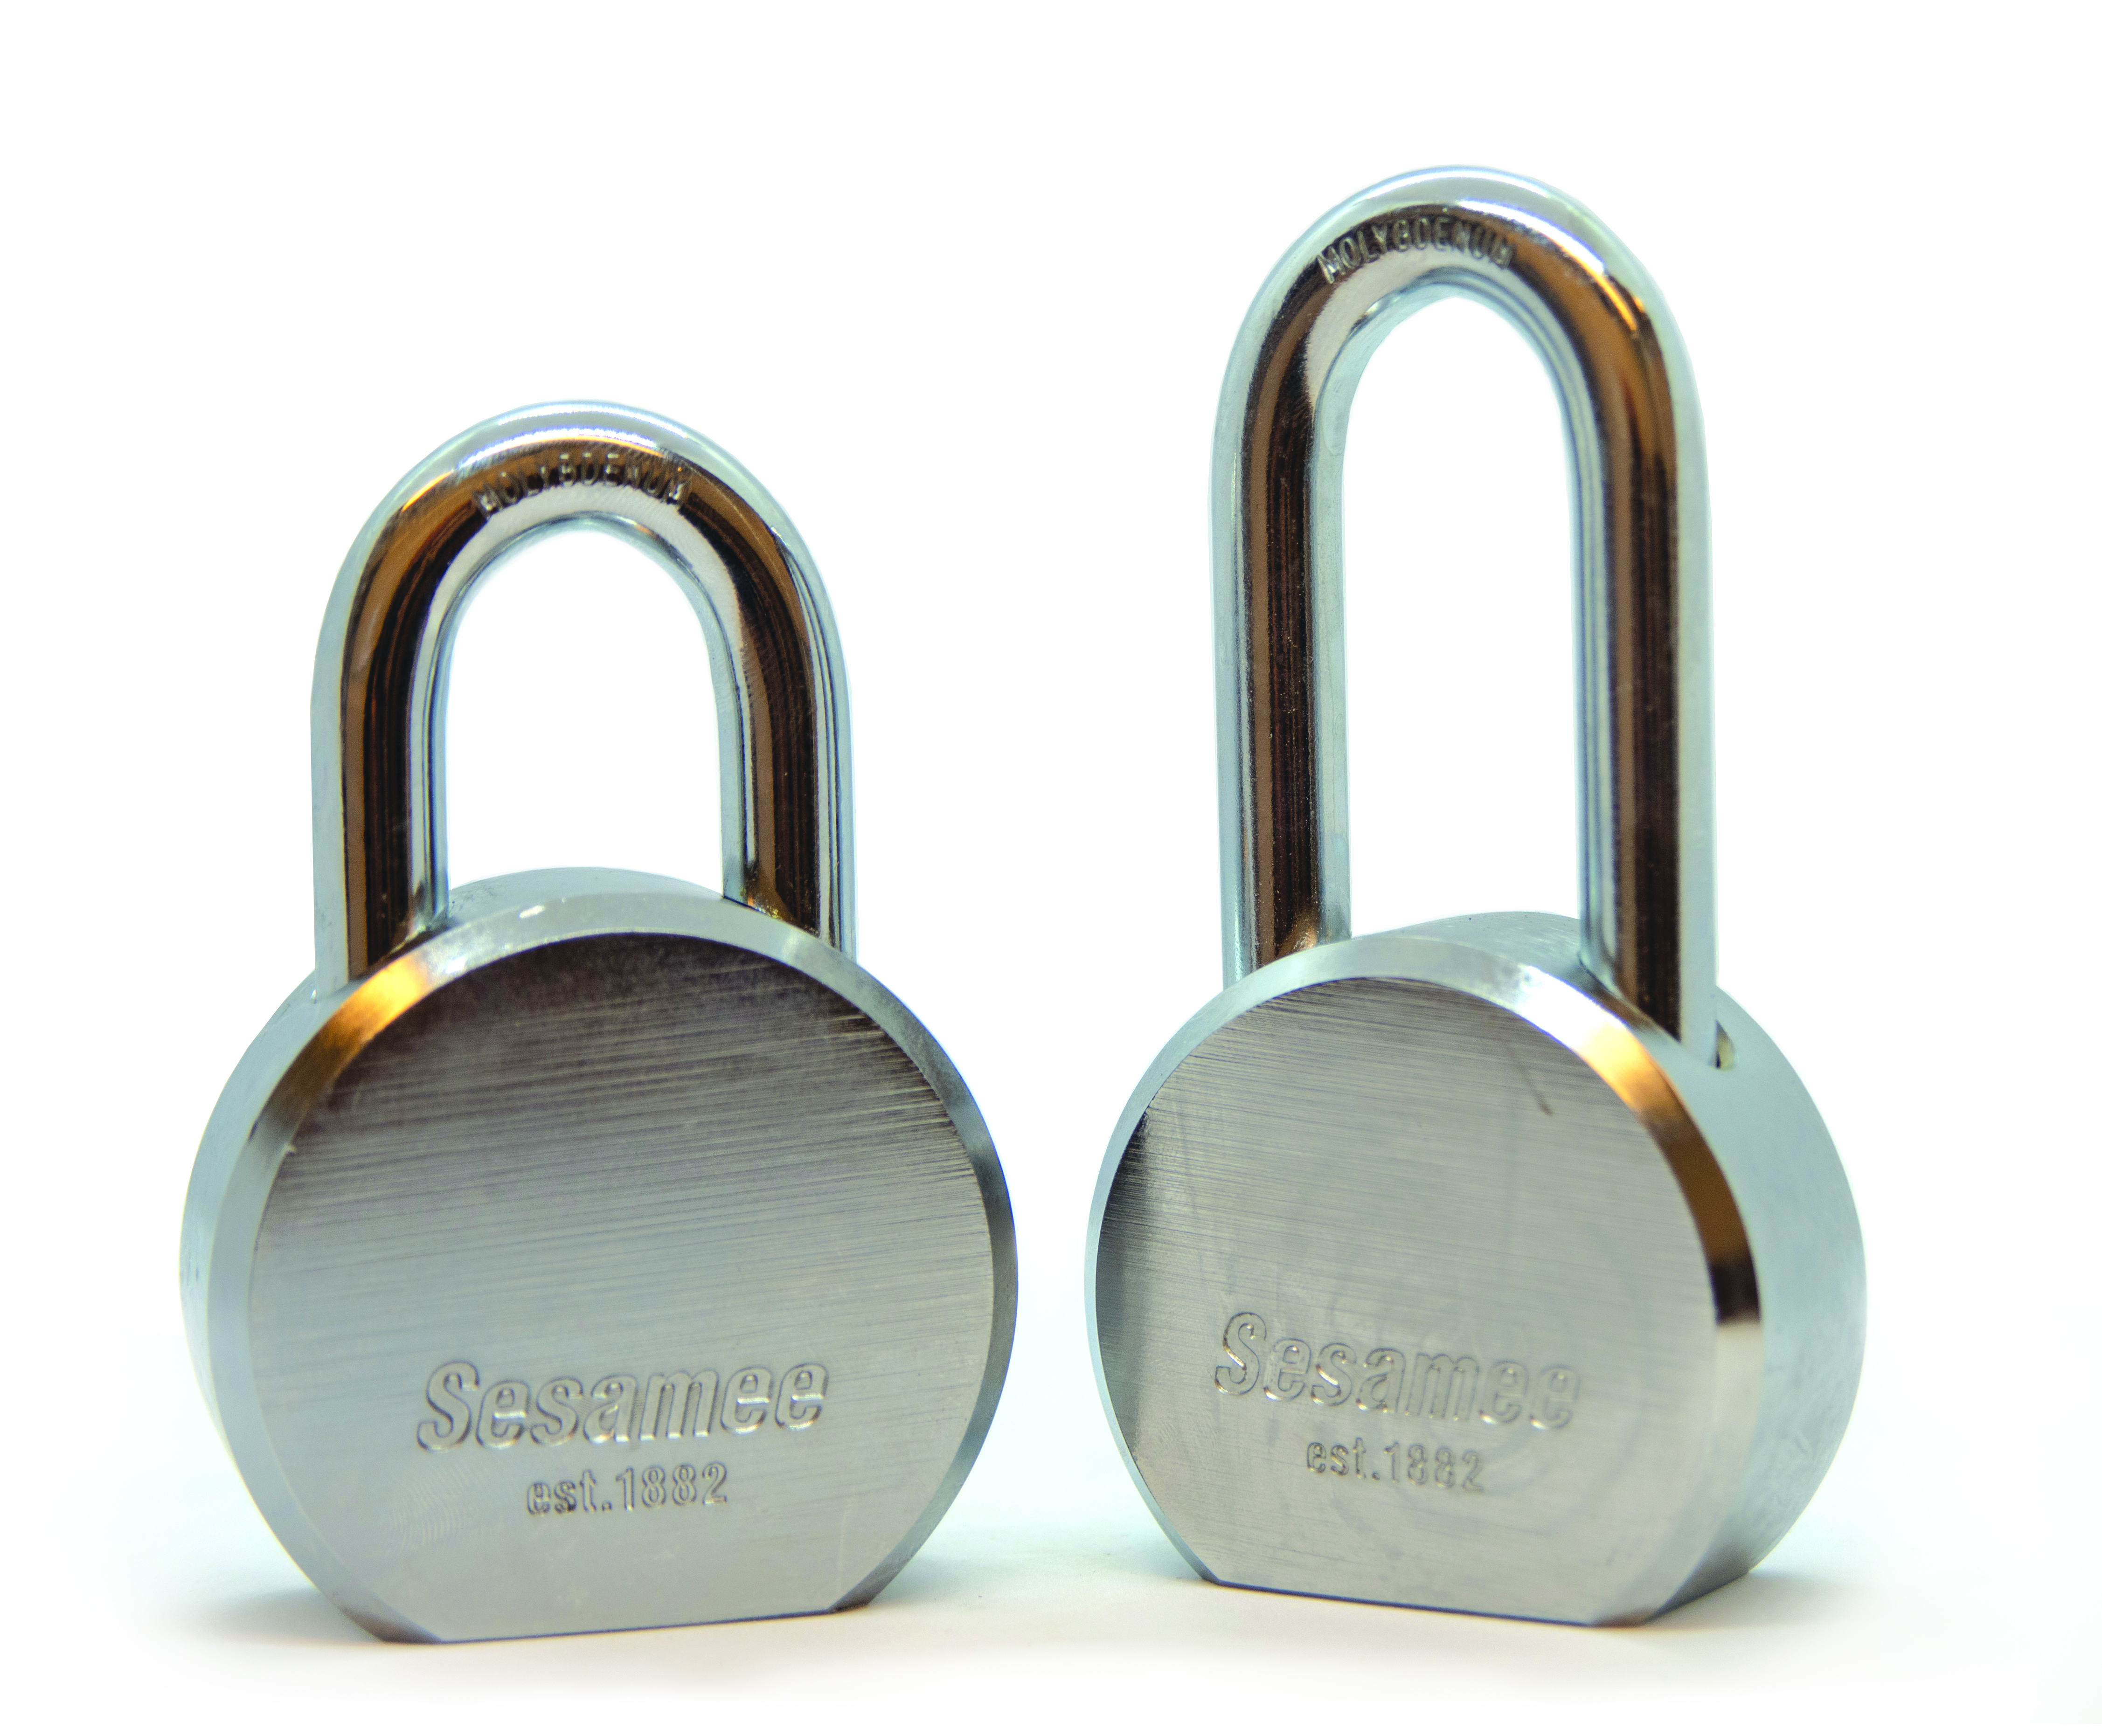 936/937 Series Heavy-Duty Round Body Padlock 93601